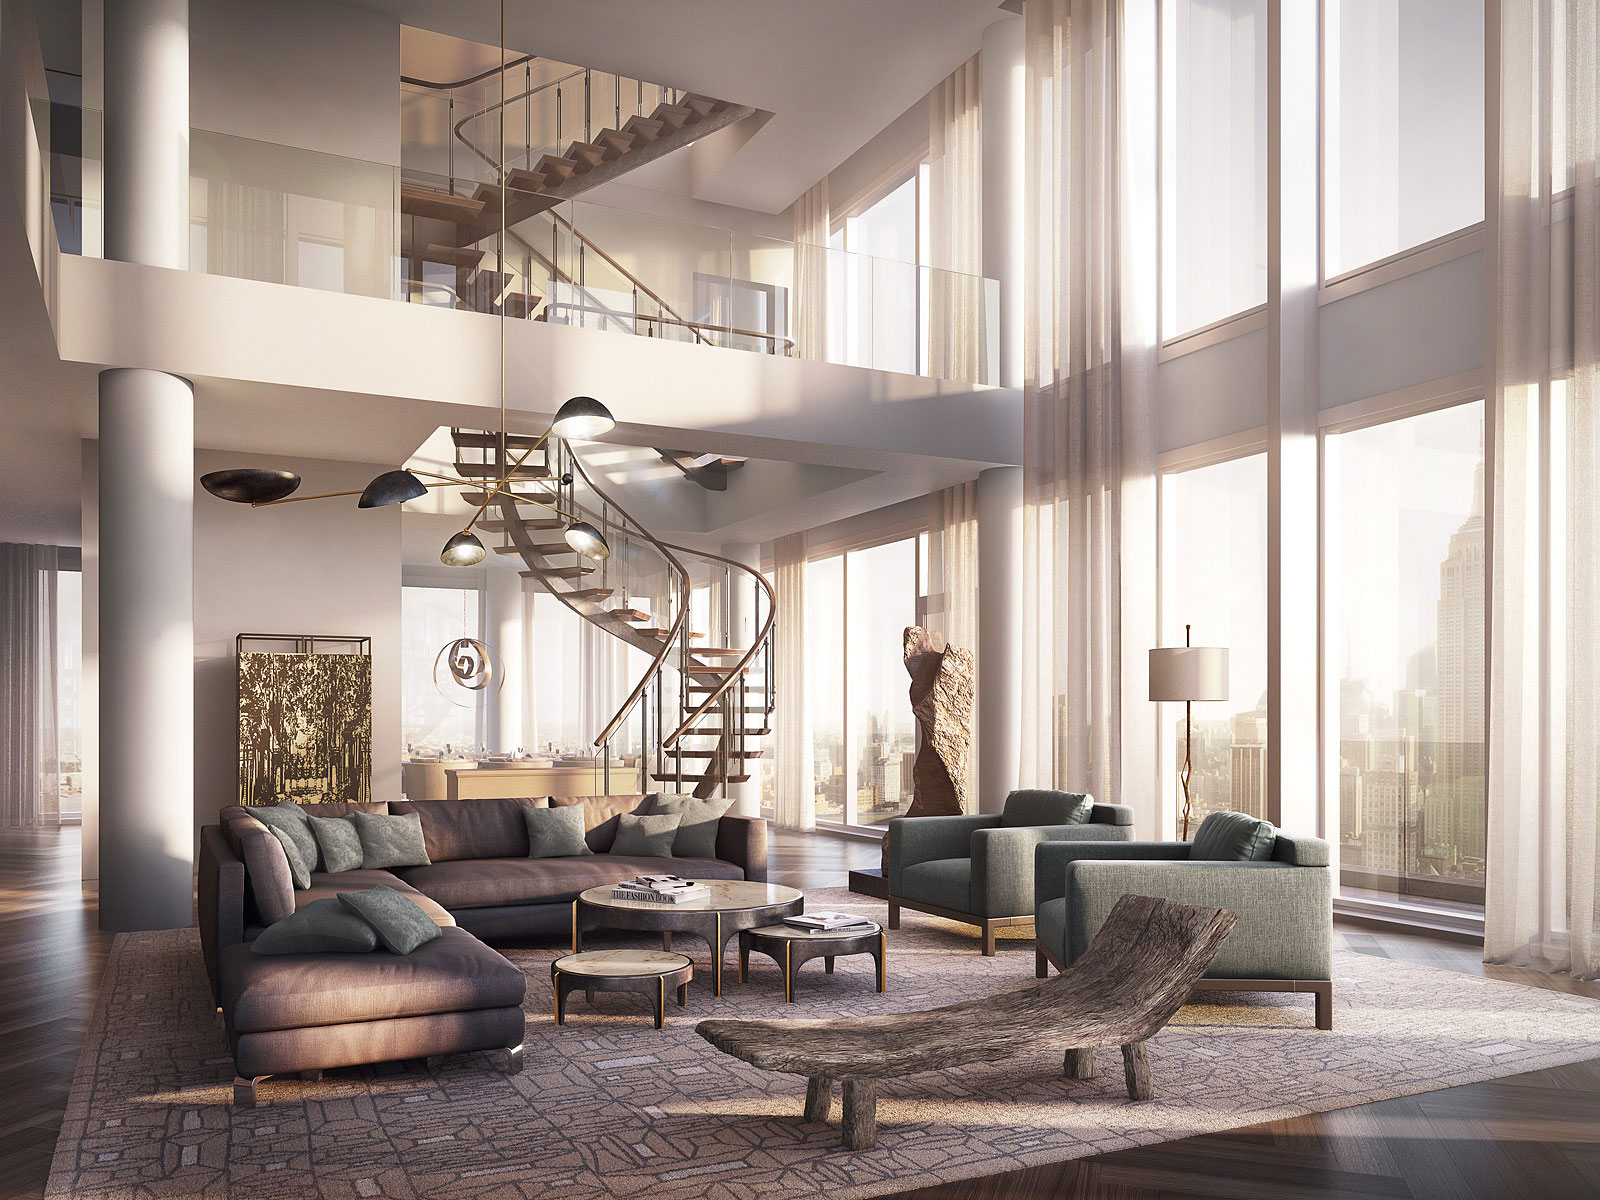 Top-Units-Of-New-York-Condo-To-Be-Bought-By-Rupert-Murdoch-3